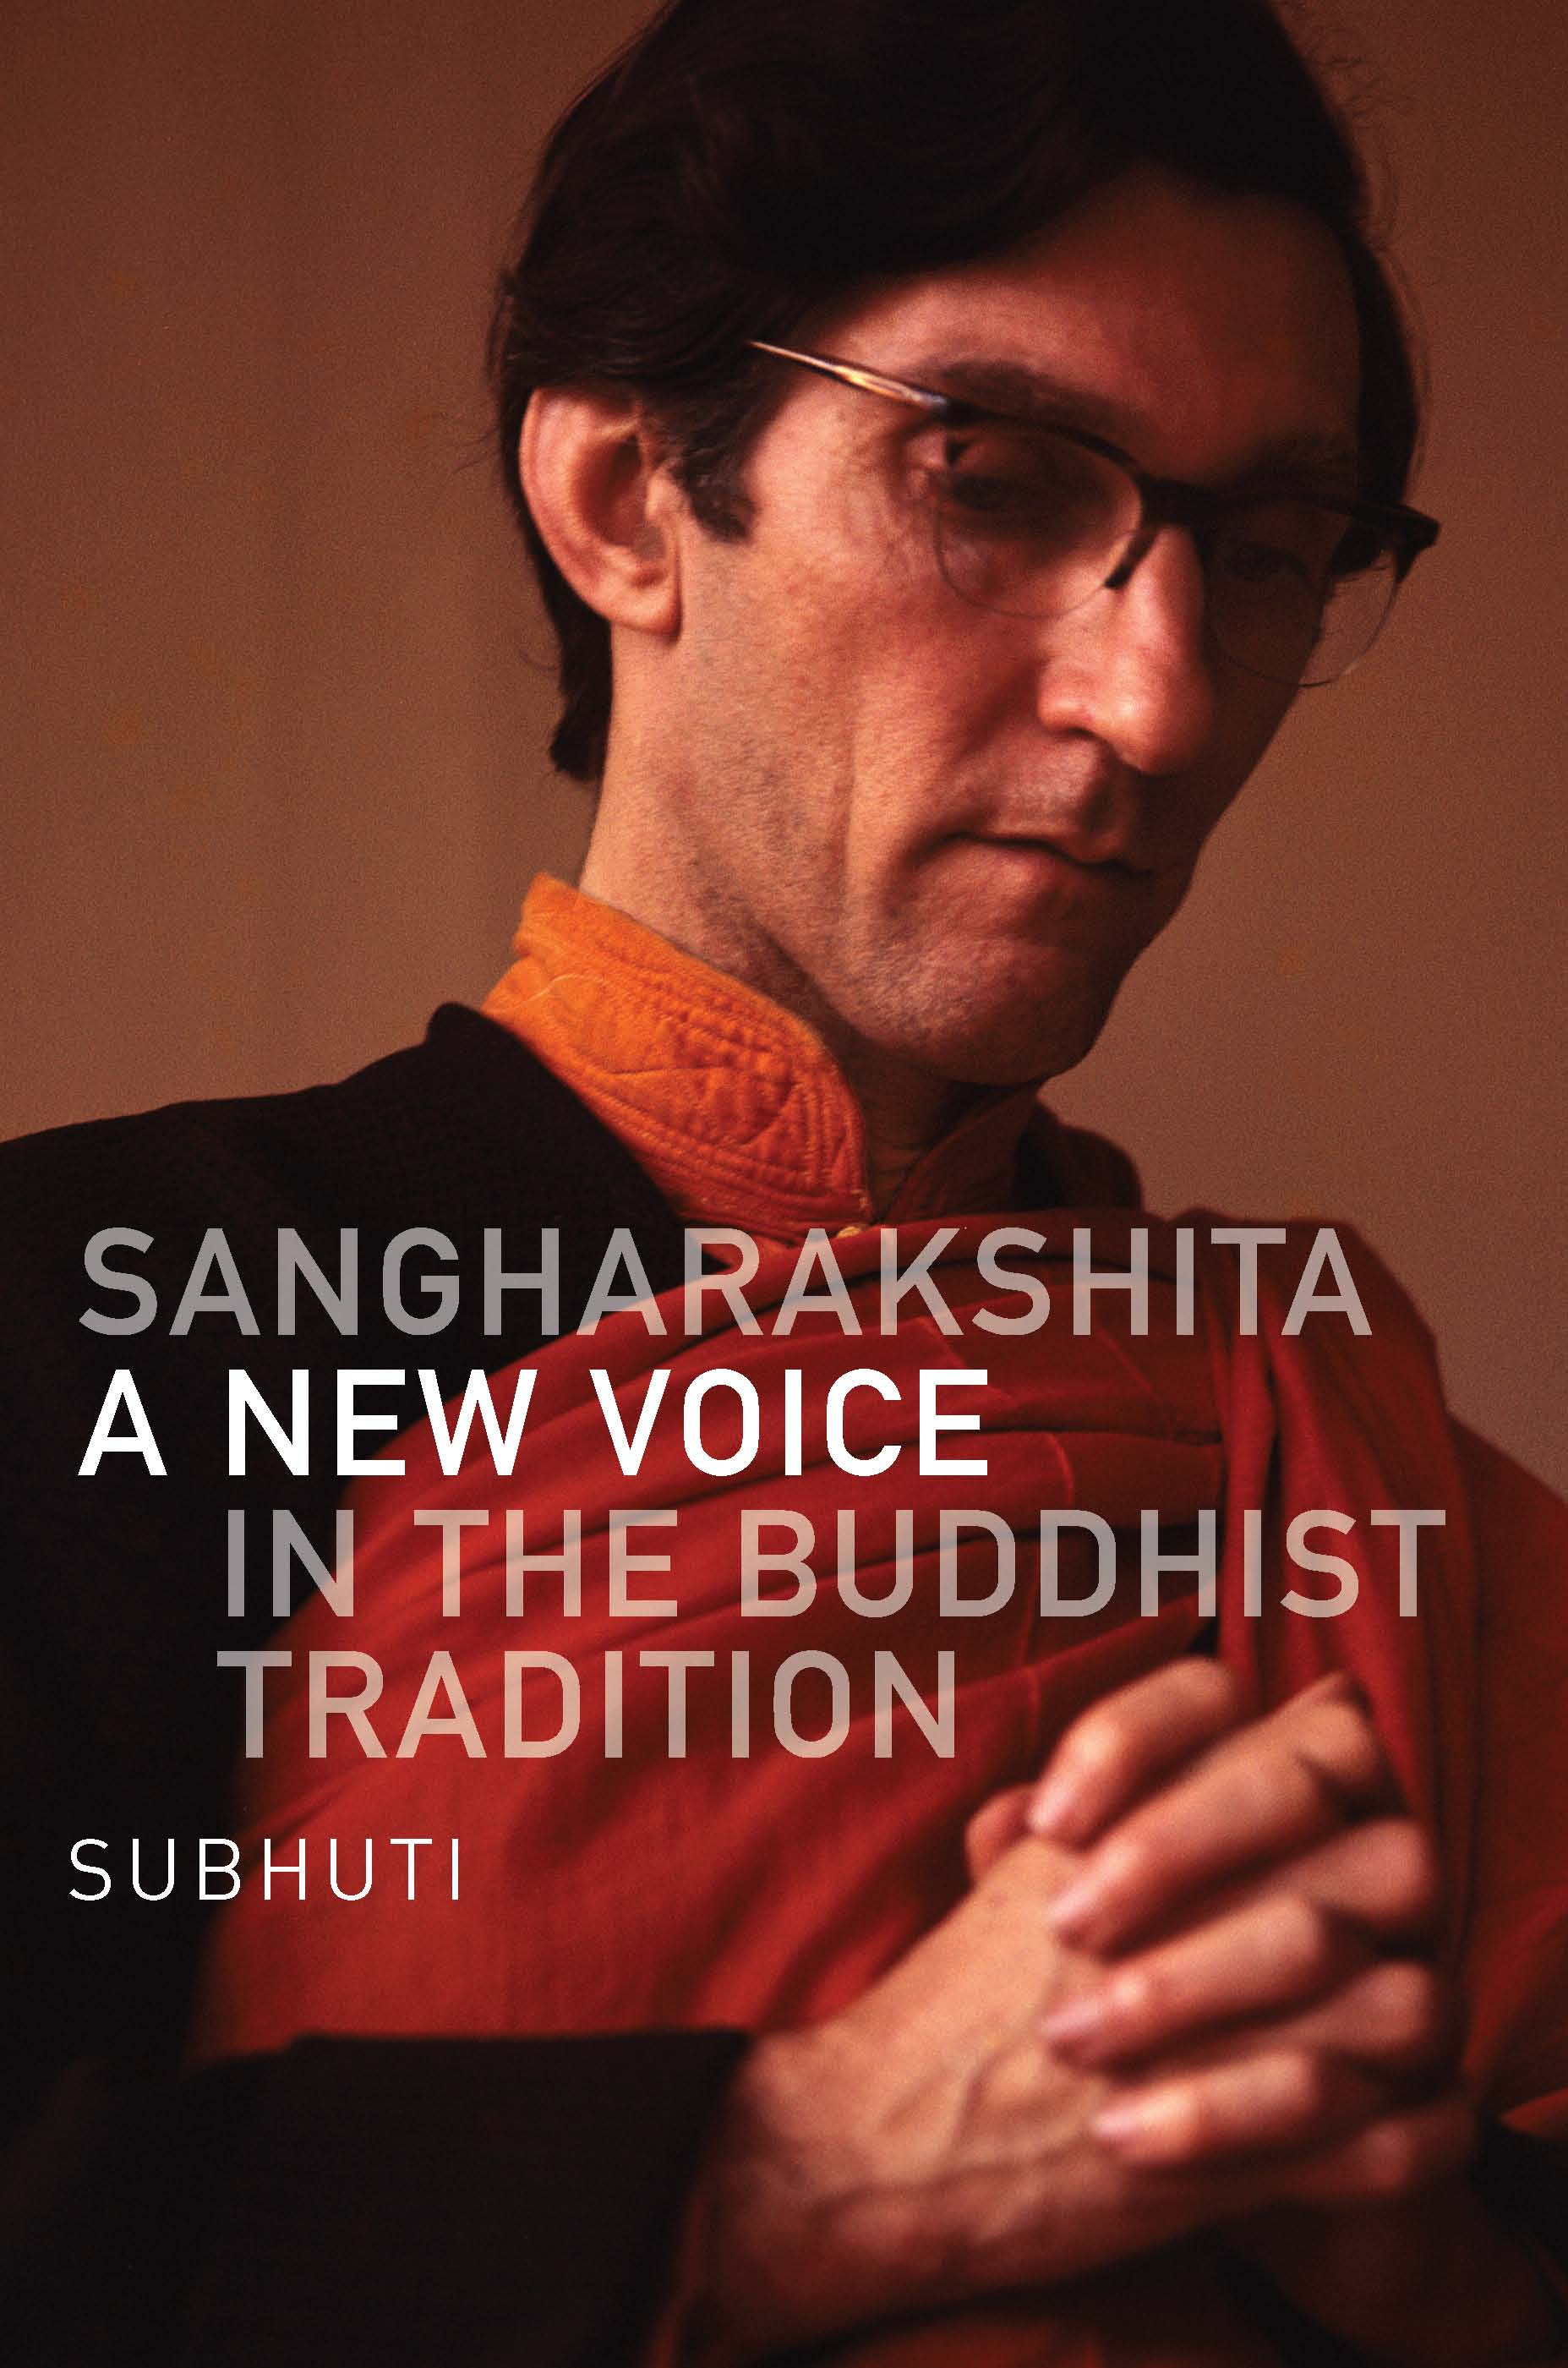 Subhuti's Sangharakshita: A New Voice in the Buddhist Tradition